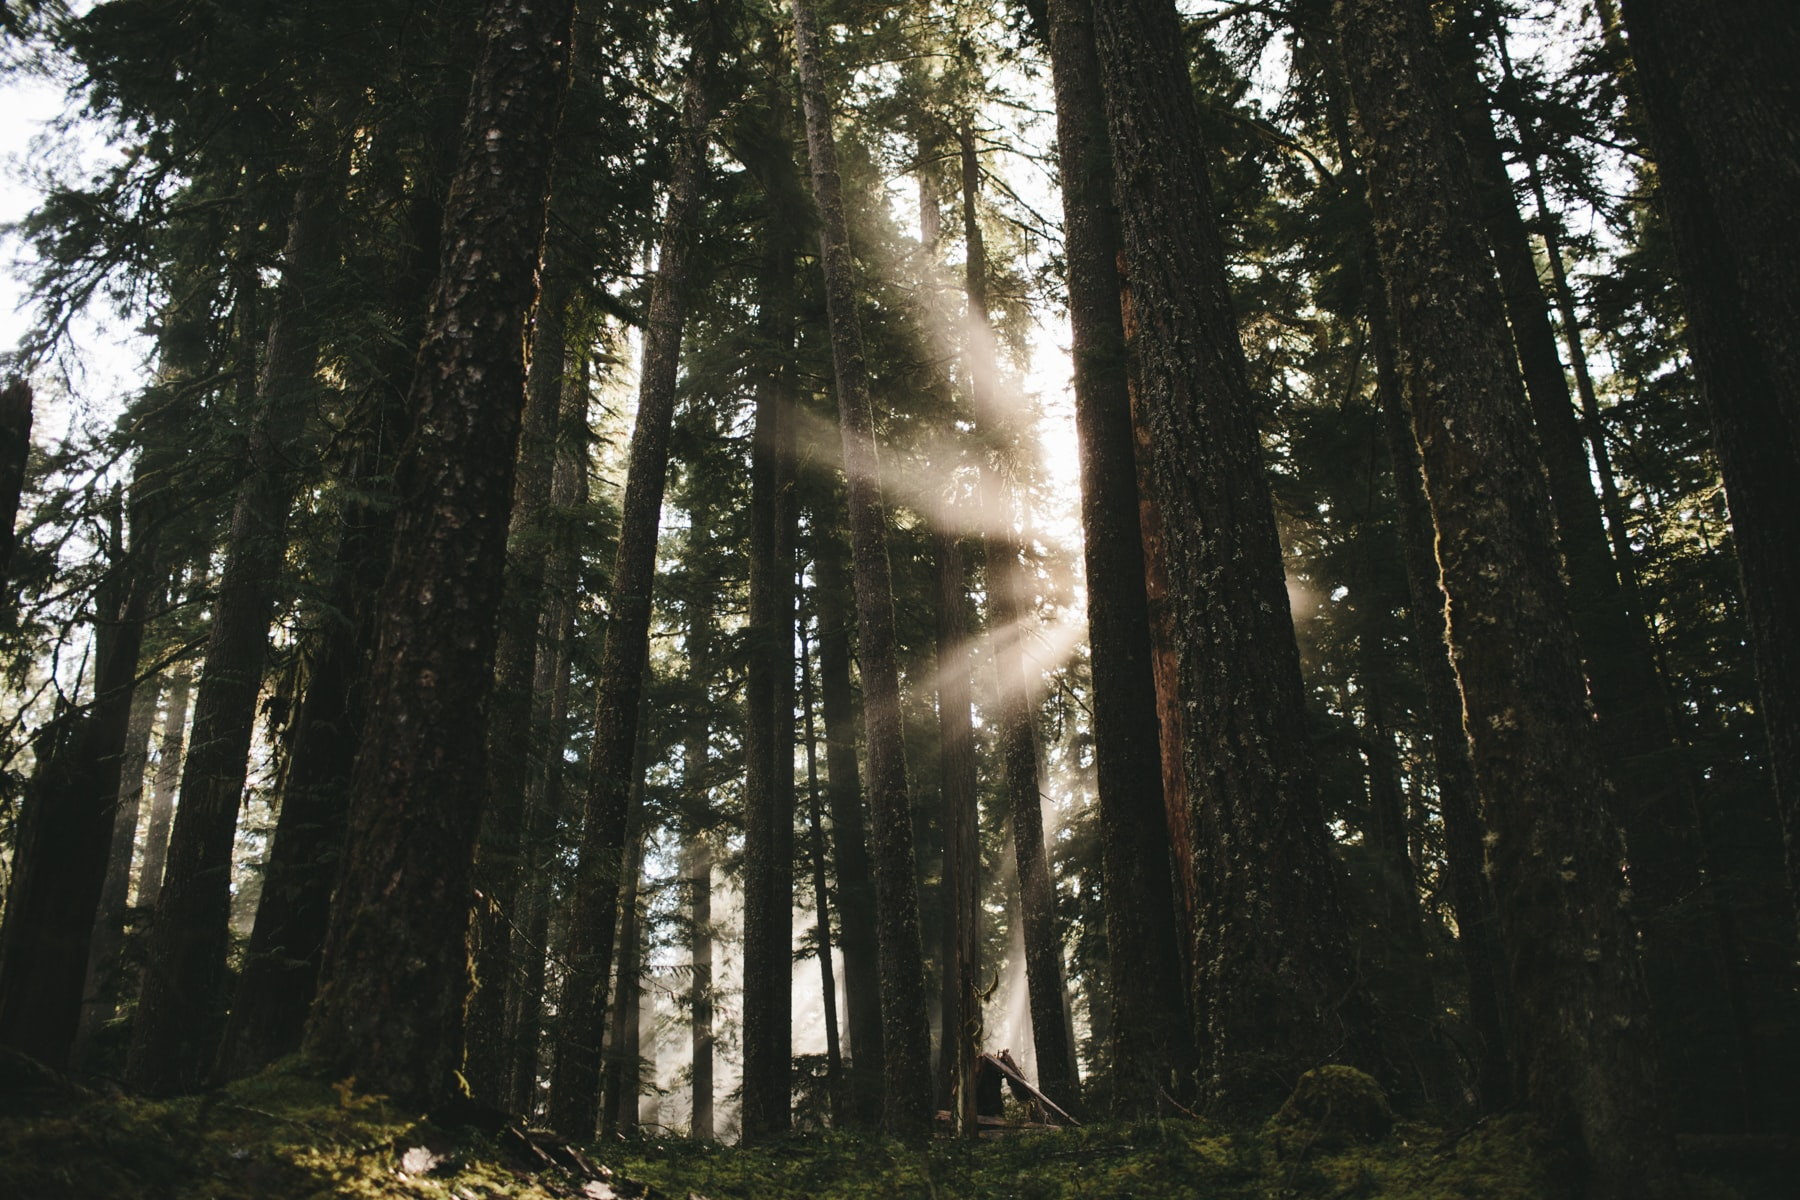 Sun rays shining through tall trees in a forest.